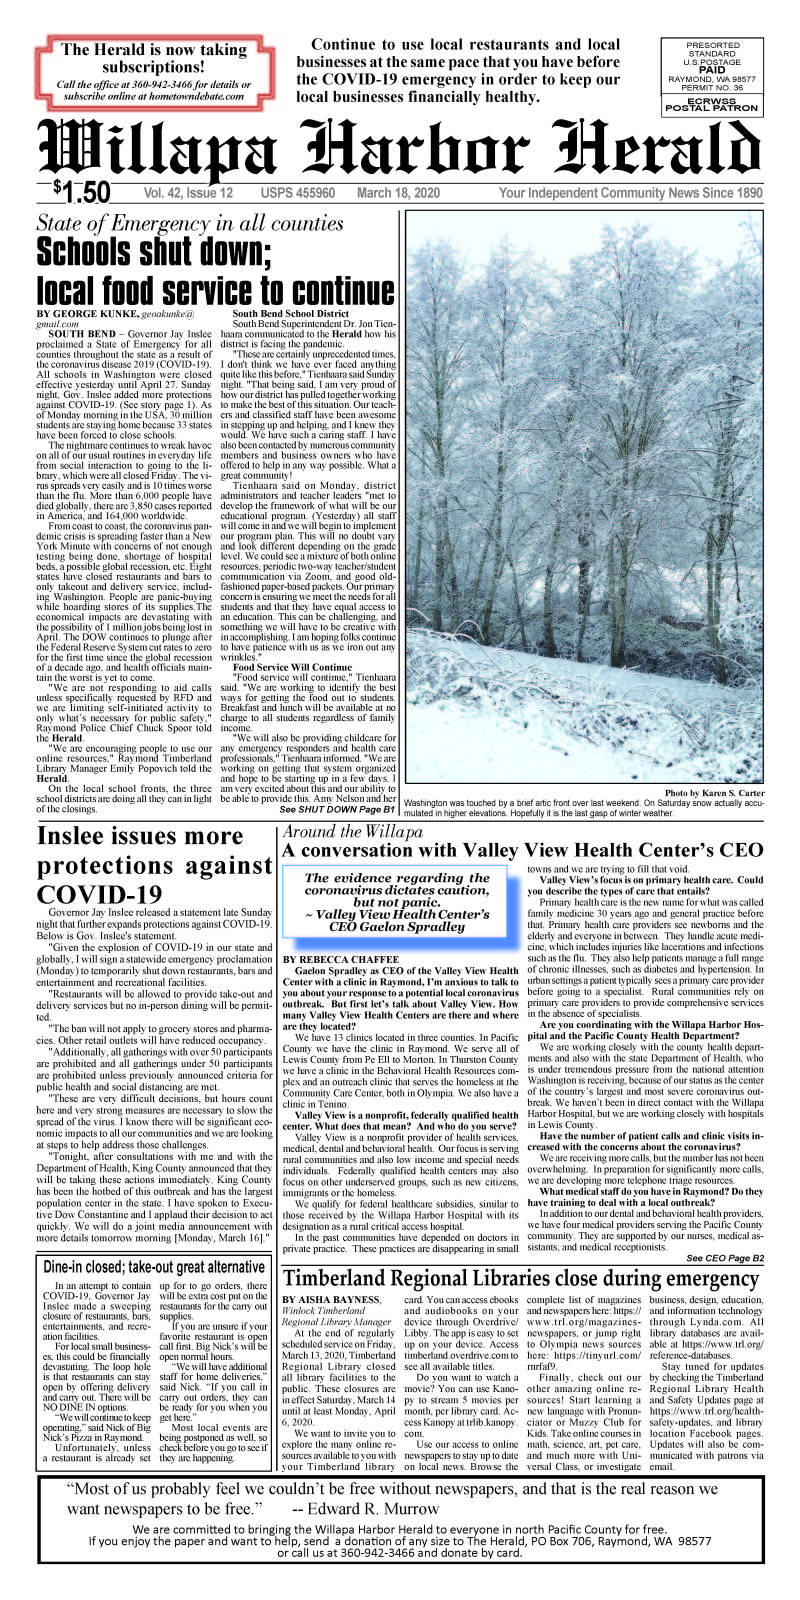 March 18, 2020 Willapa Harbor Herald and Pacific County Press